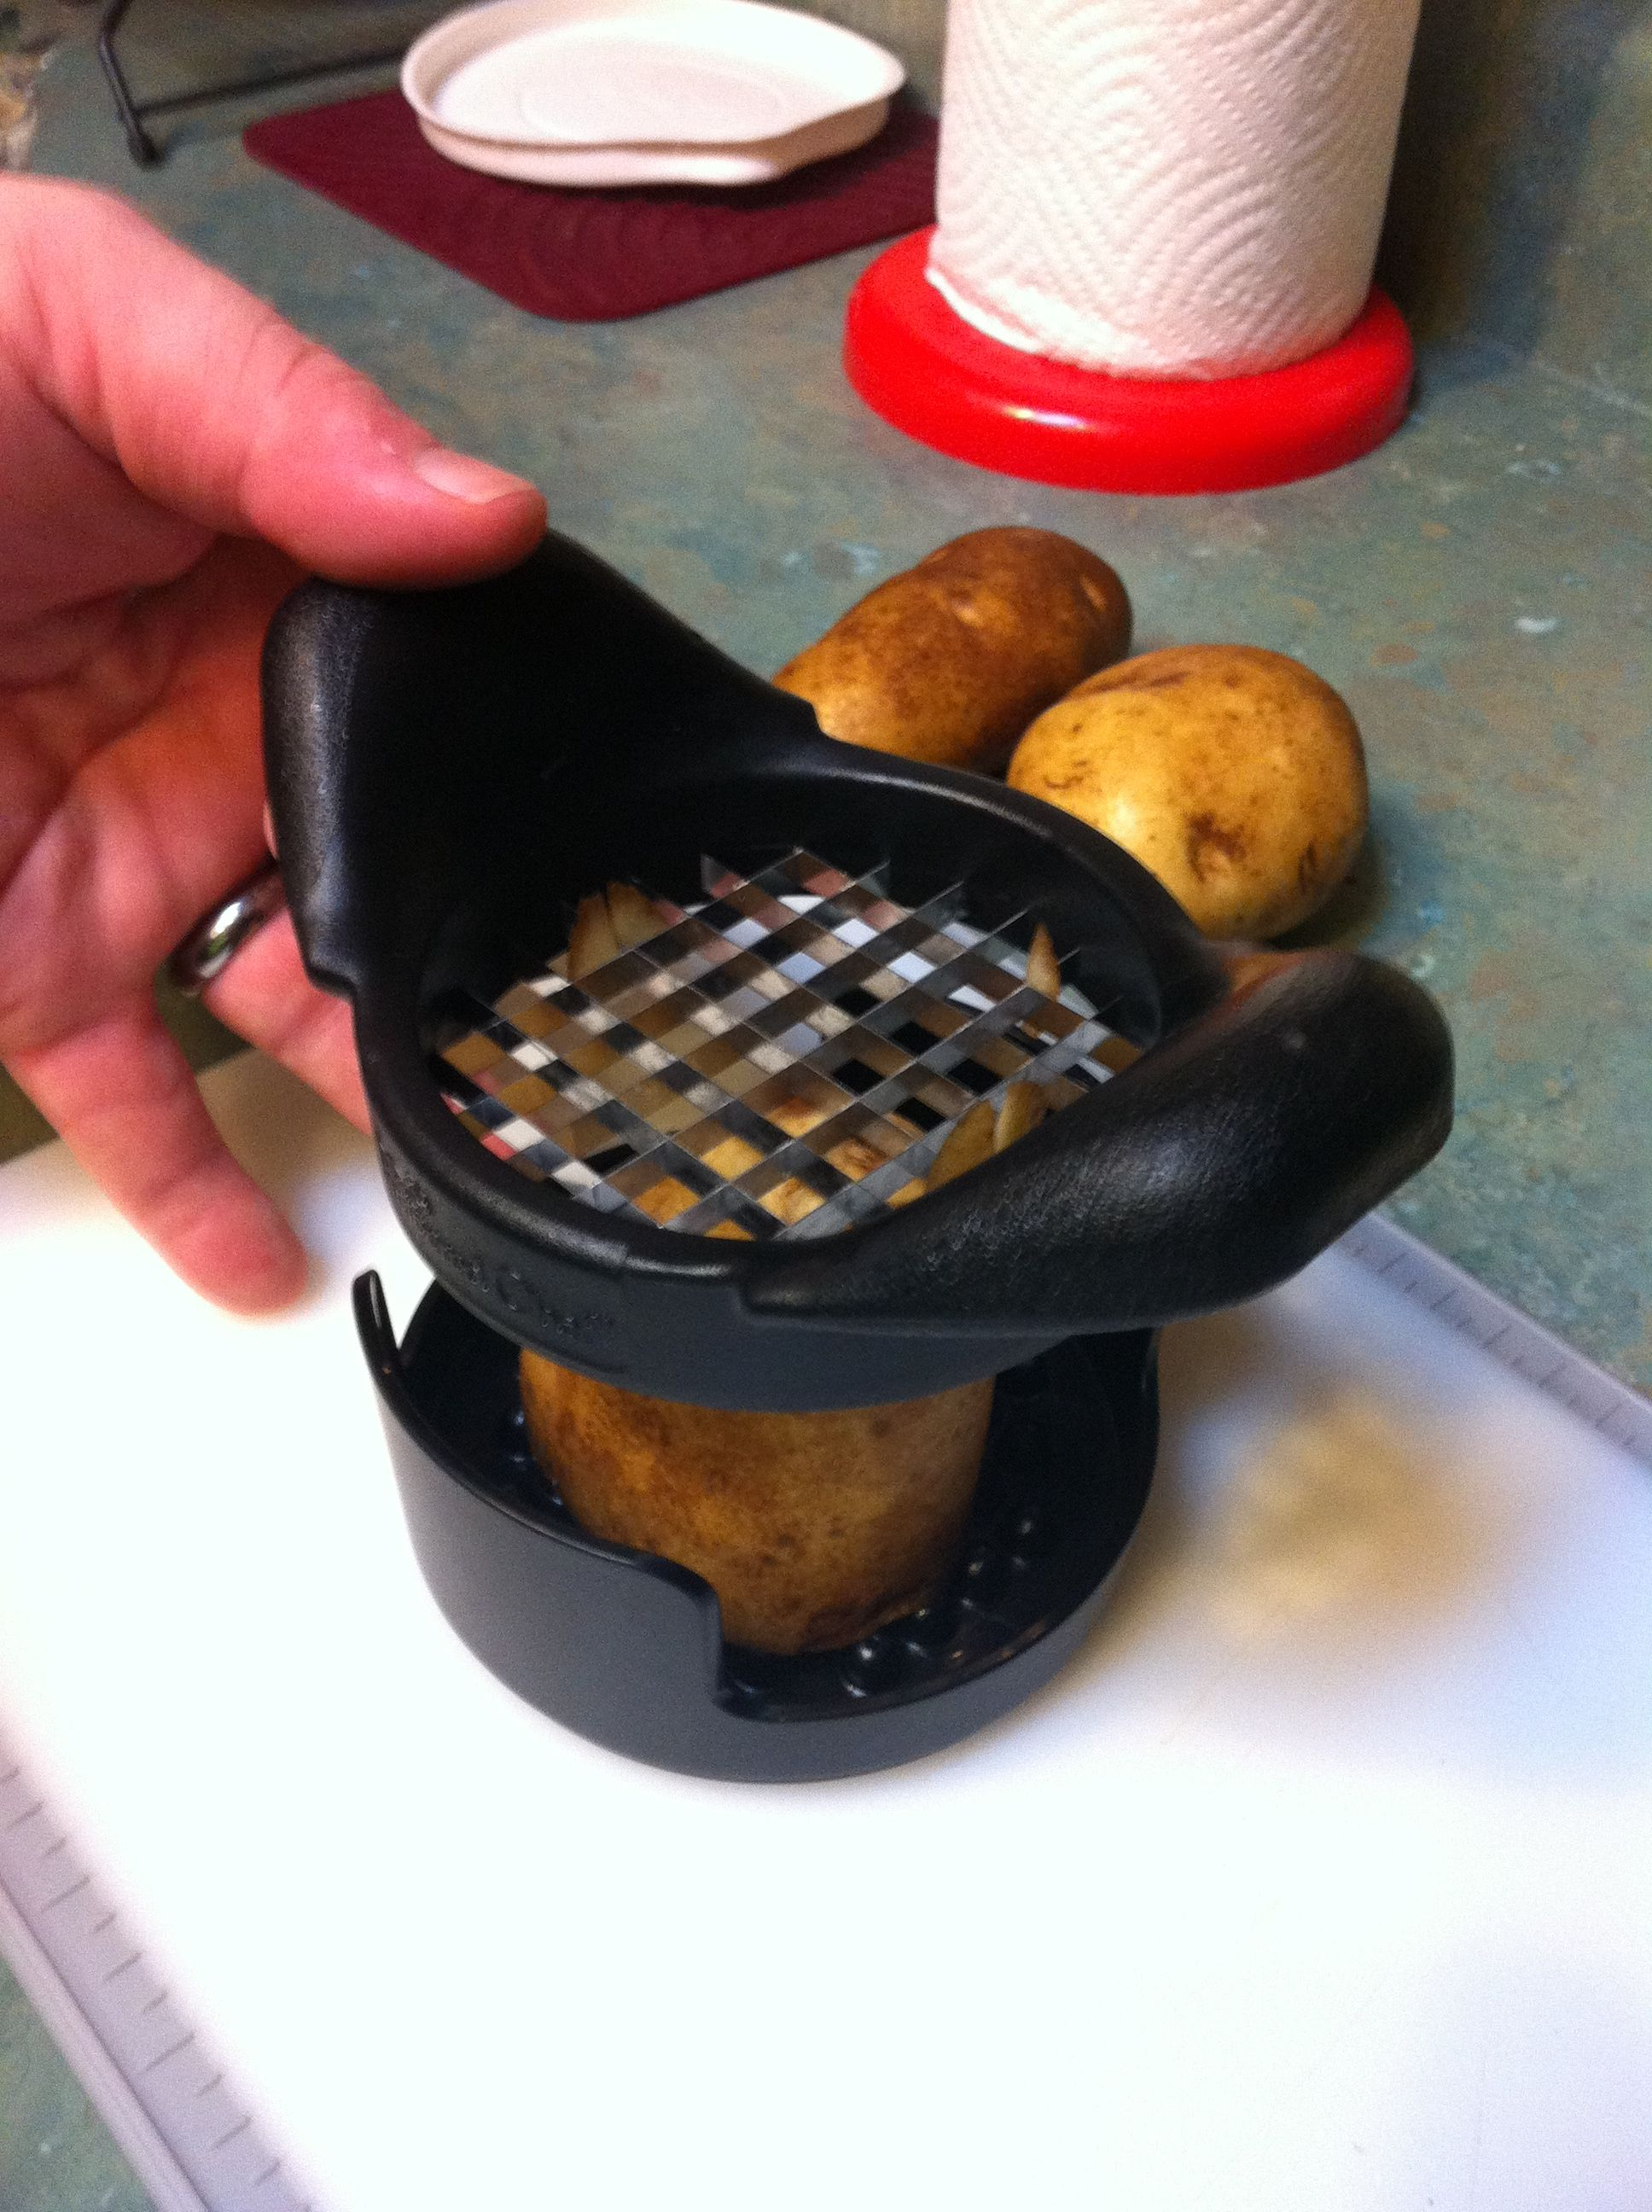 Pampered Chef S French Fry Cutter Makes Uniform